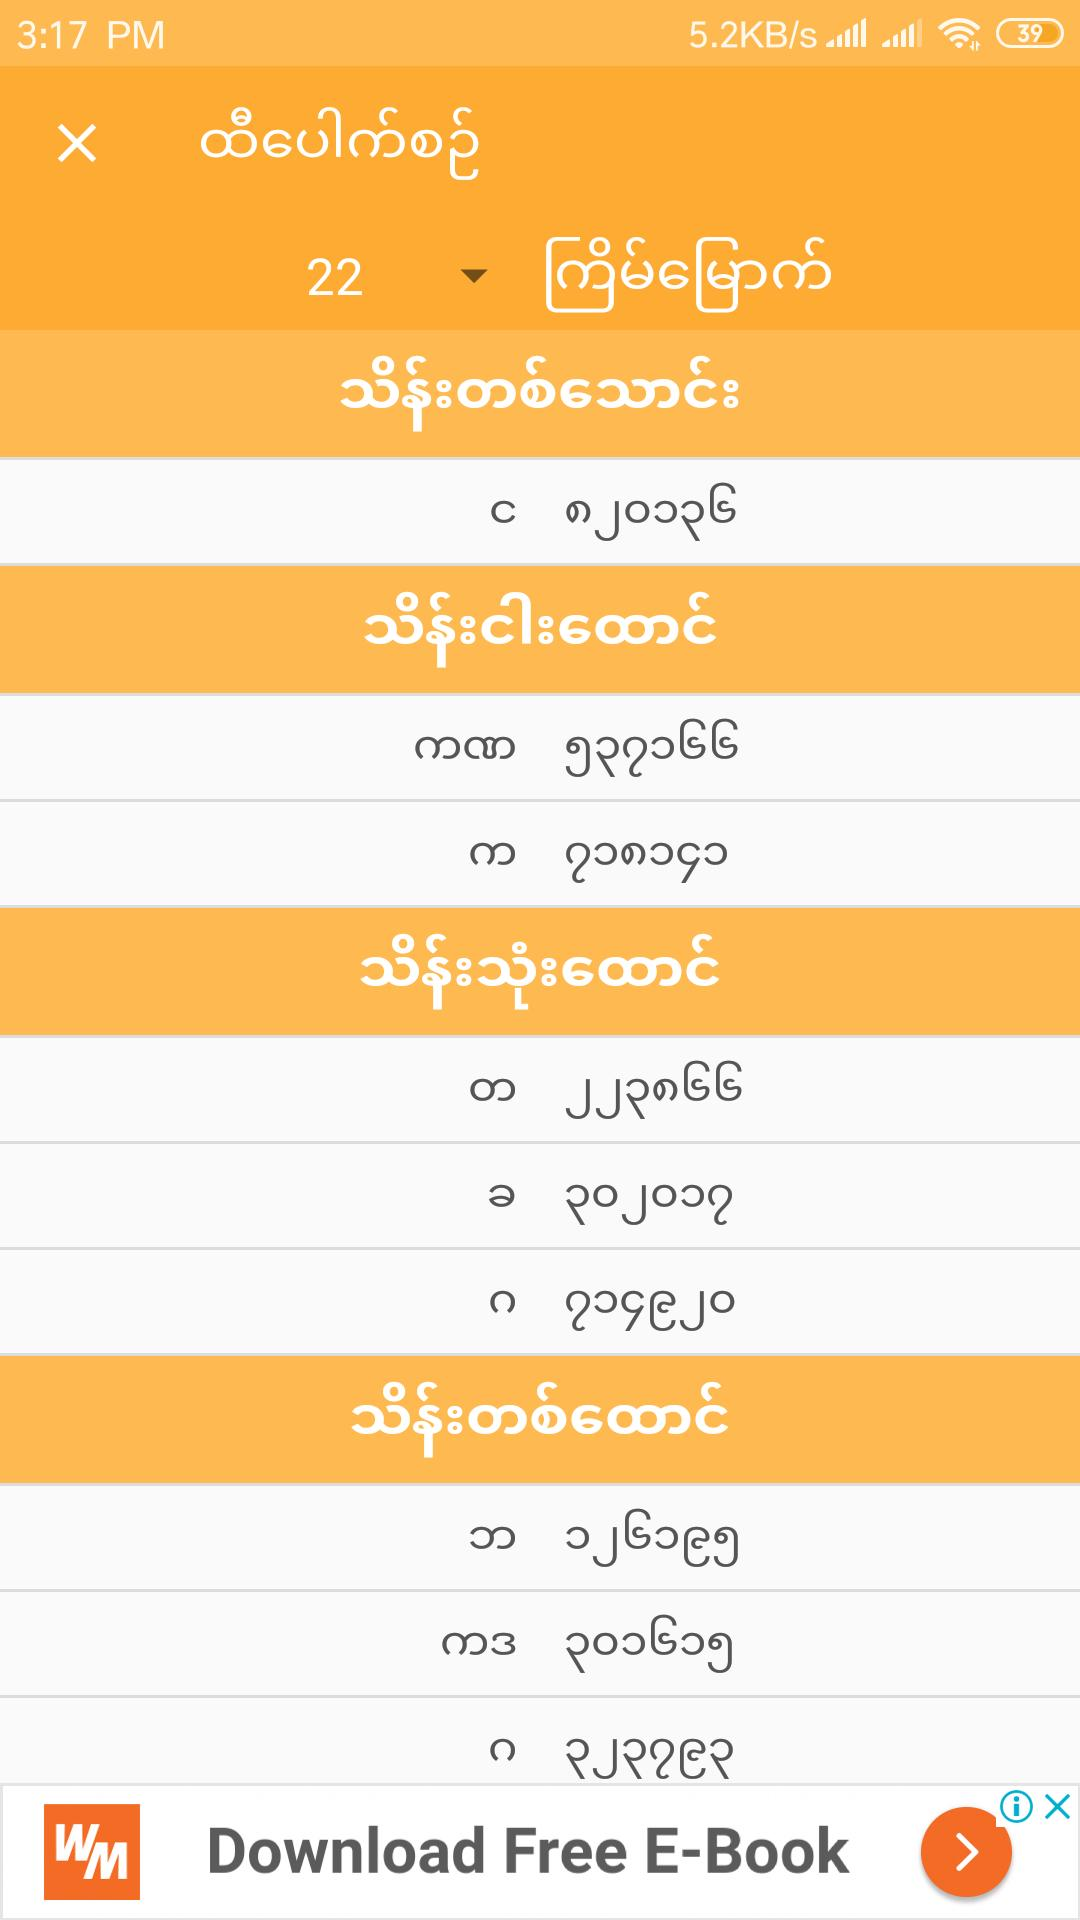 ထီ - (Myanmar Lottery) for Android - APK Download